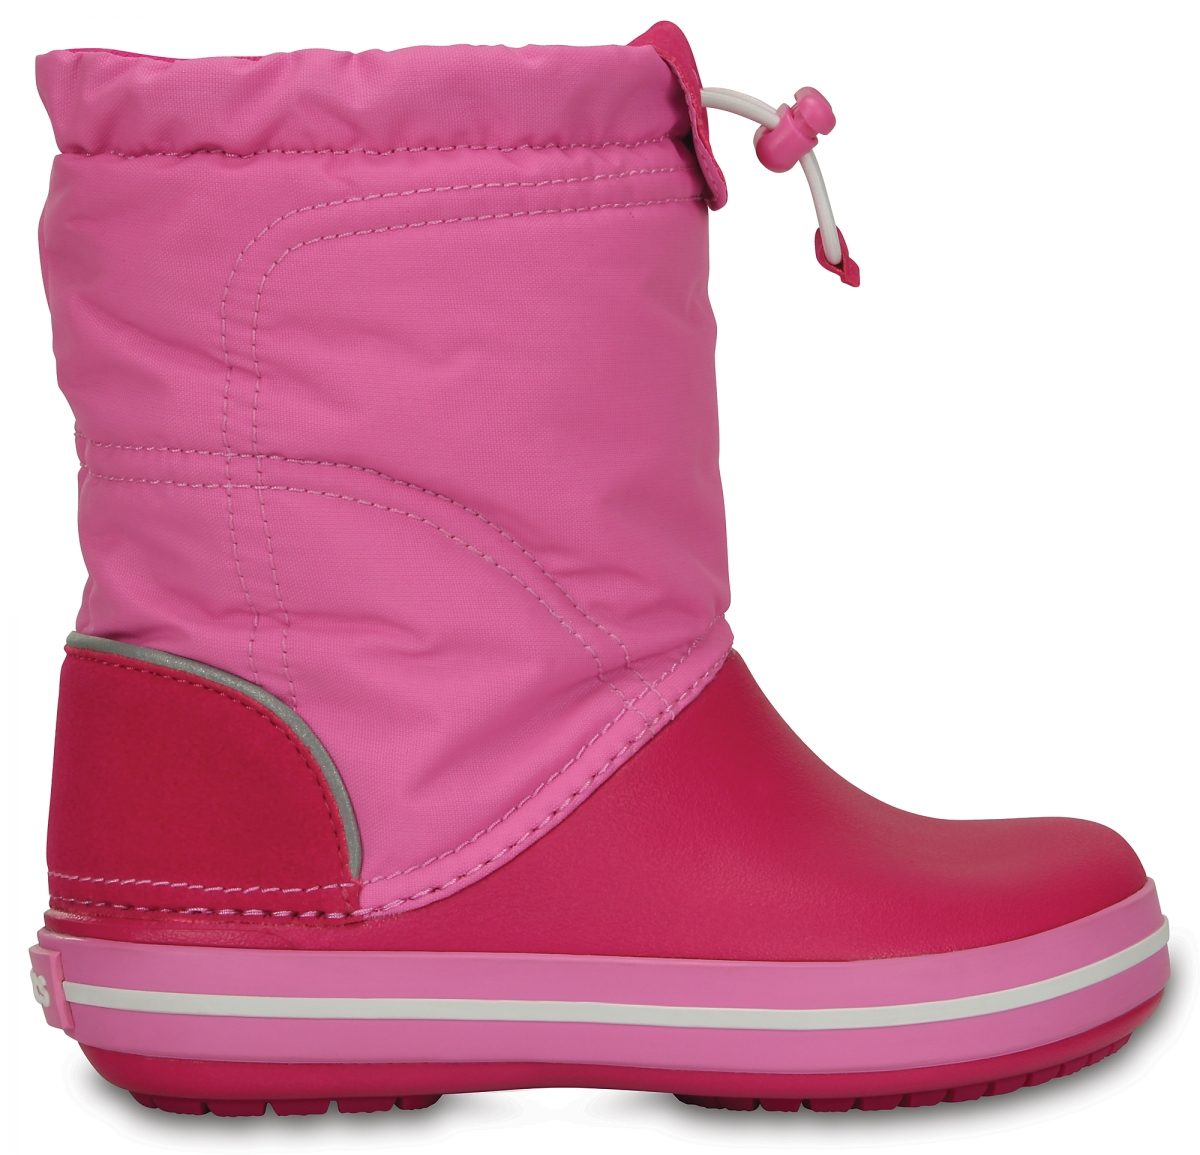 Crocs Crocband LodgePoint Boot Kids - Candy Pink/Party Pink, J1 (32-33)